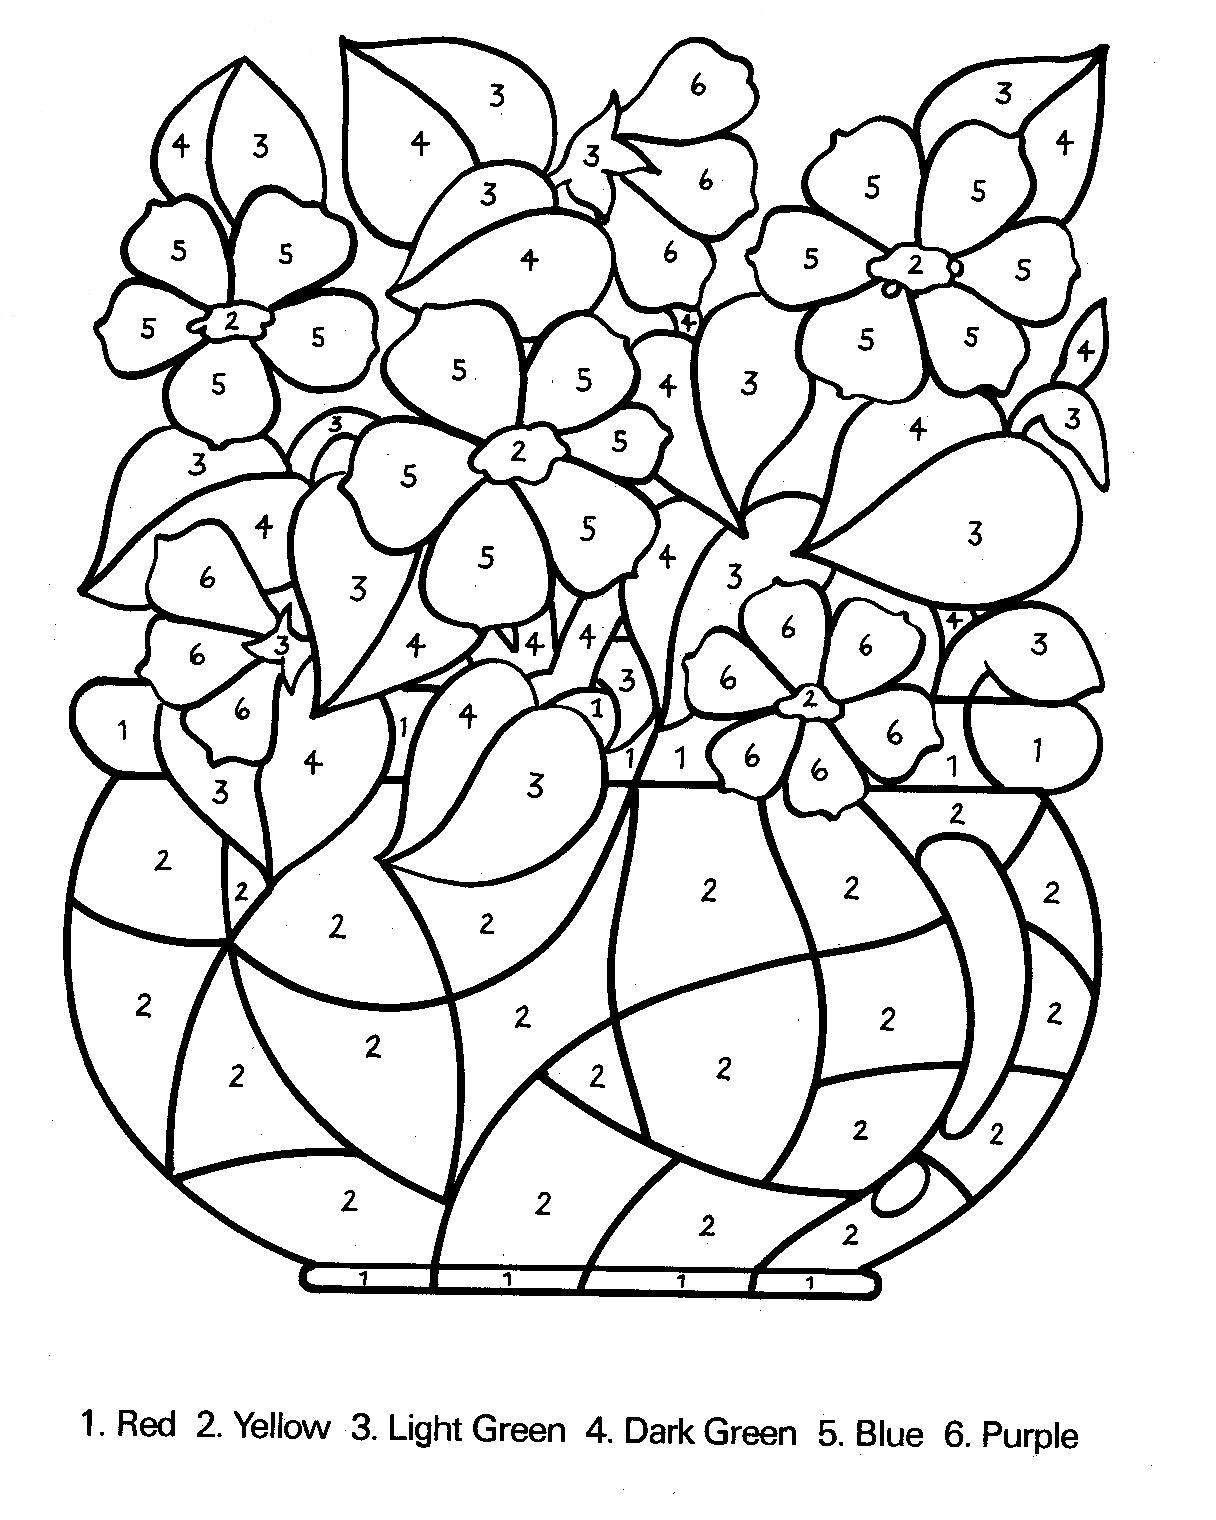 Spring coloring pages for 4th graders - Number Flowers Coloring Sheets Digg Stumbleupon Del Icio Us Twitter Technorati